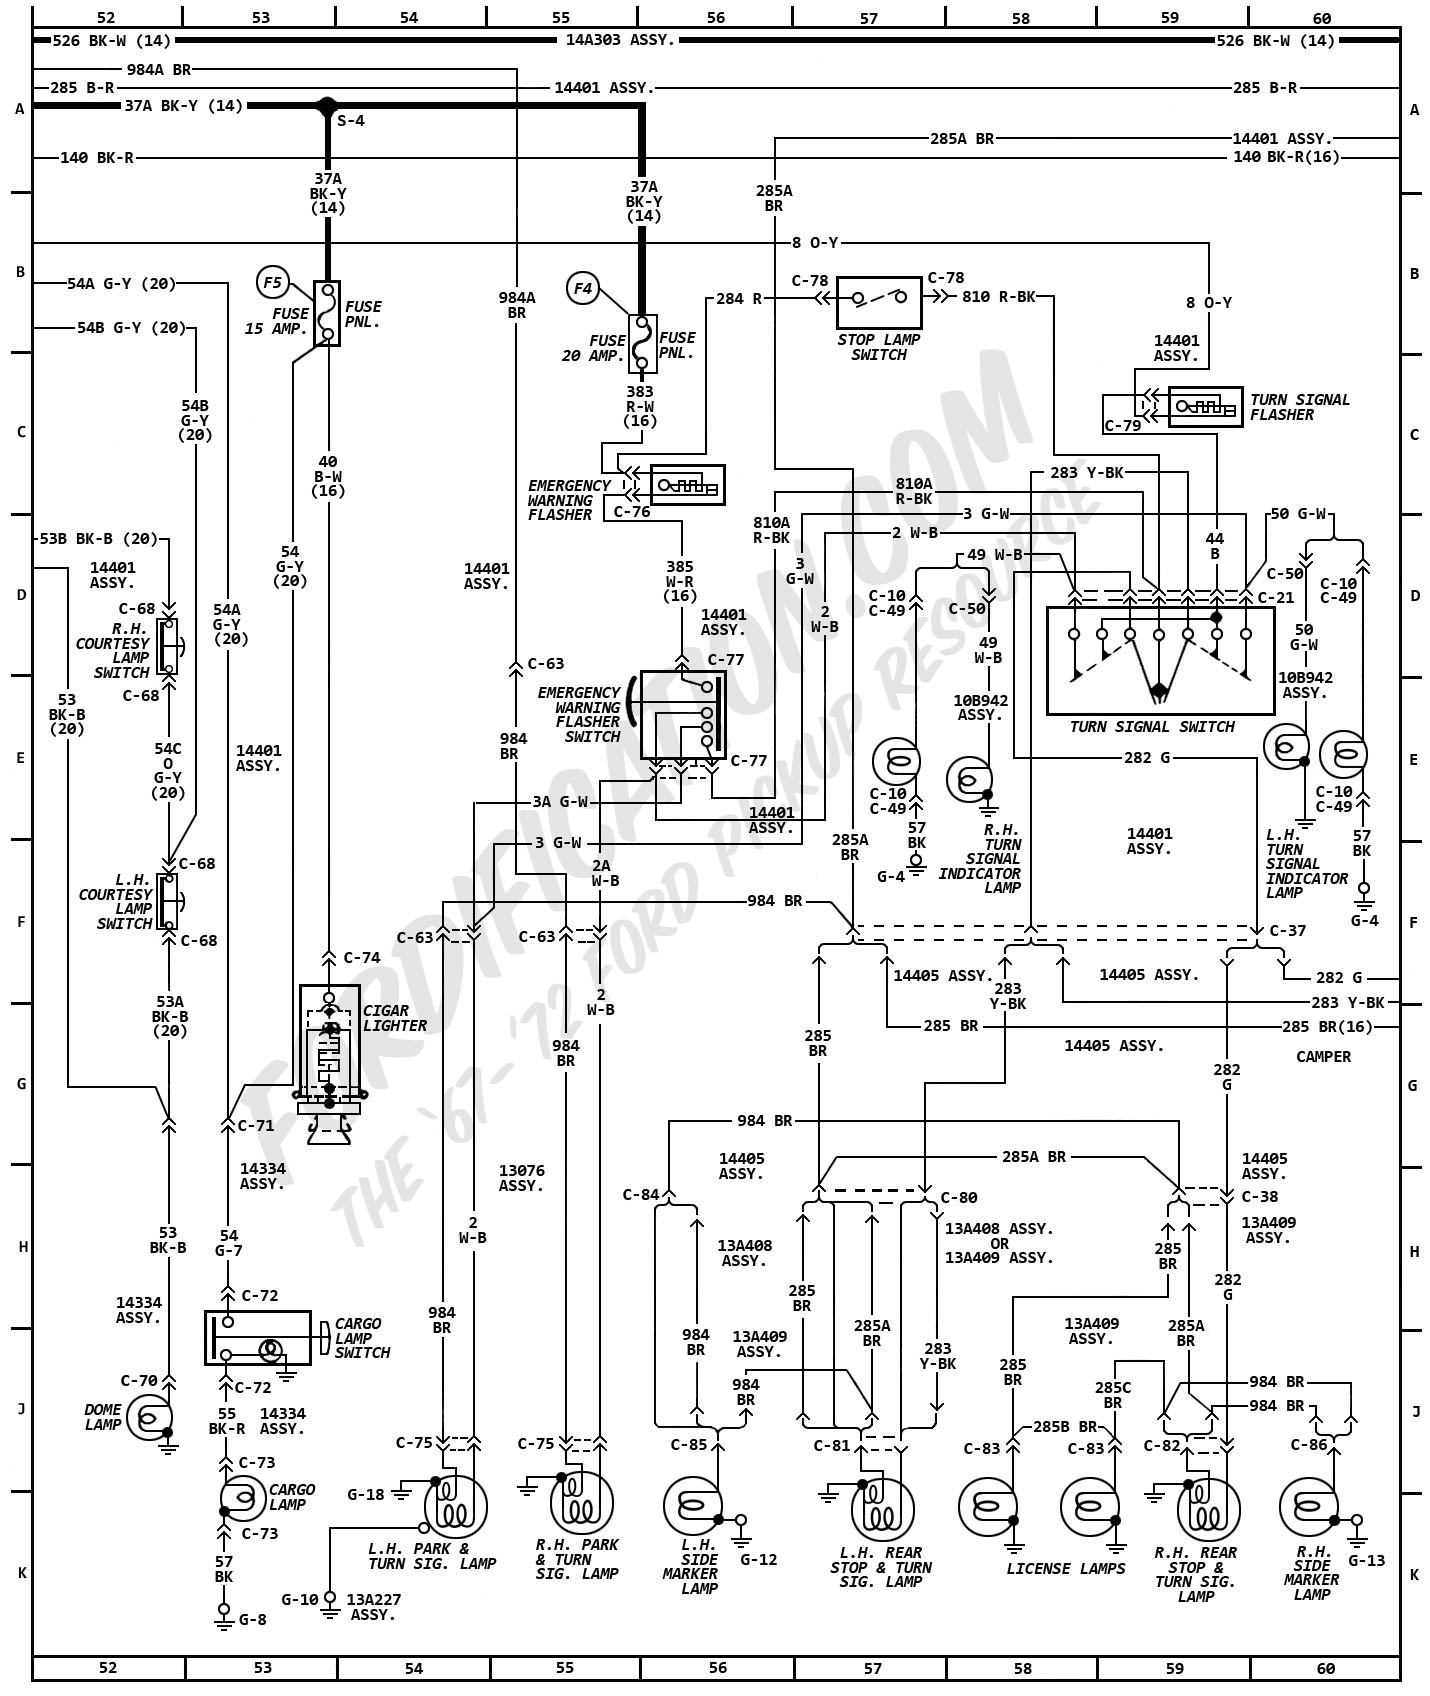 1972 ford f250 ignition wiring diagram simple wiring diagram rh david  huggett co uk 1969 Ford F-250 Wiring Diagram 2001 F 250 Super Duty Wiring  Diagram